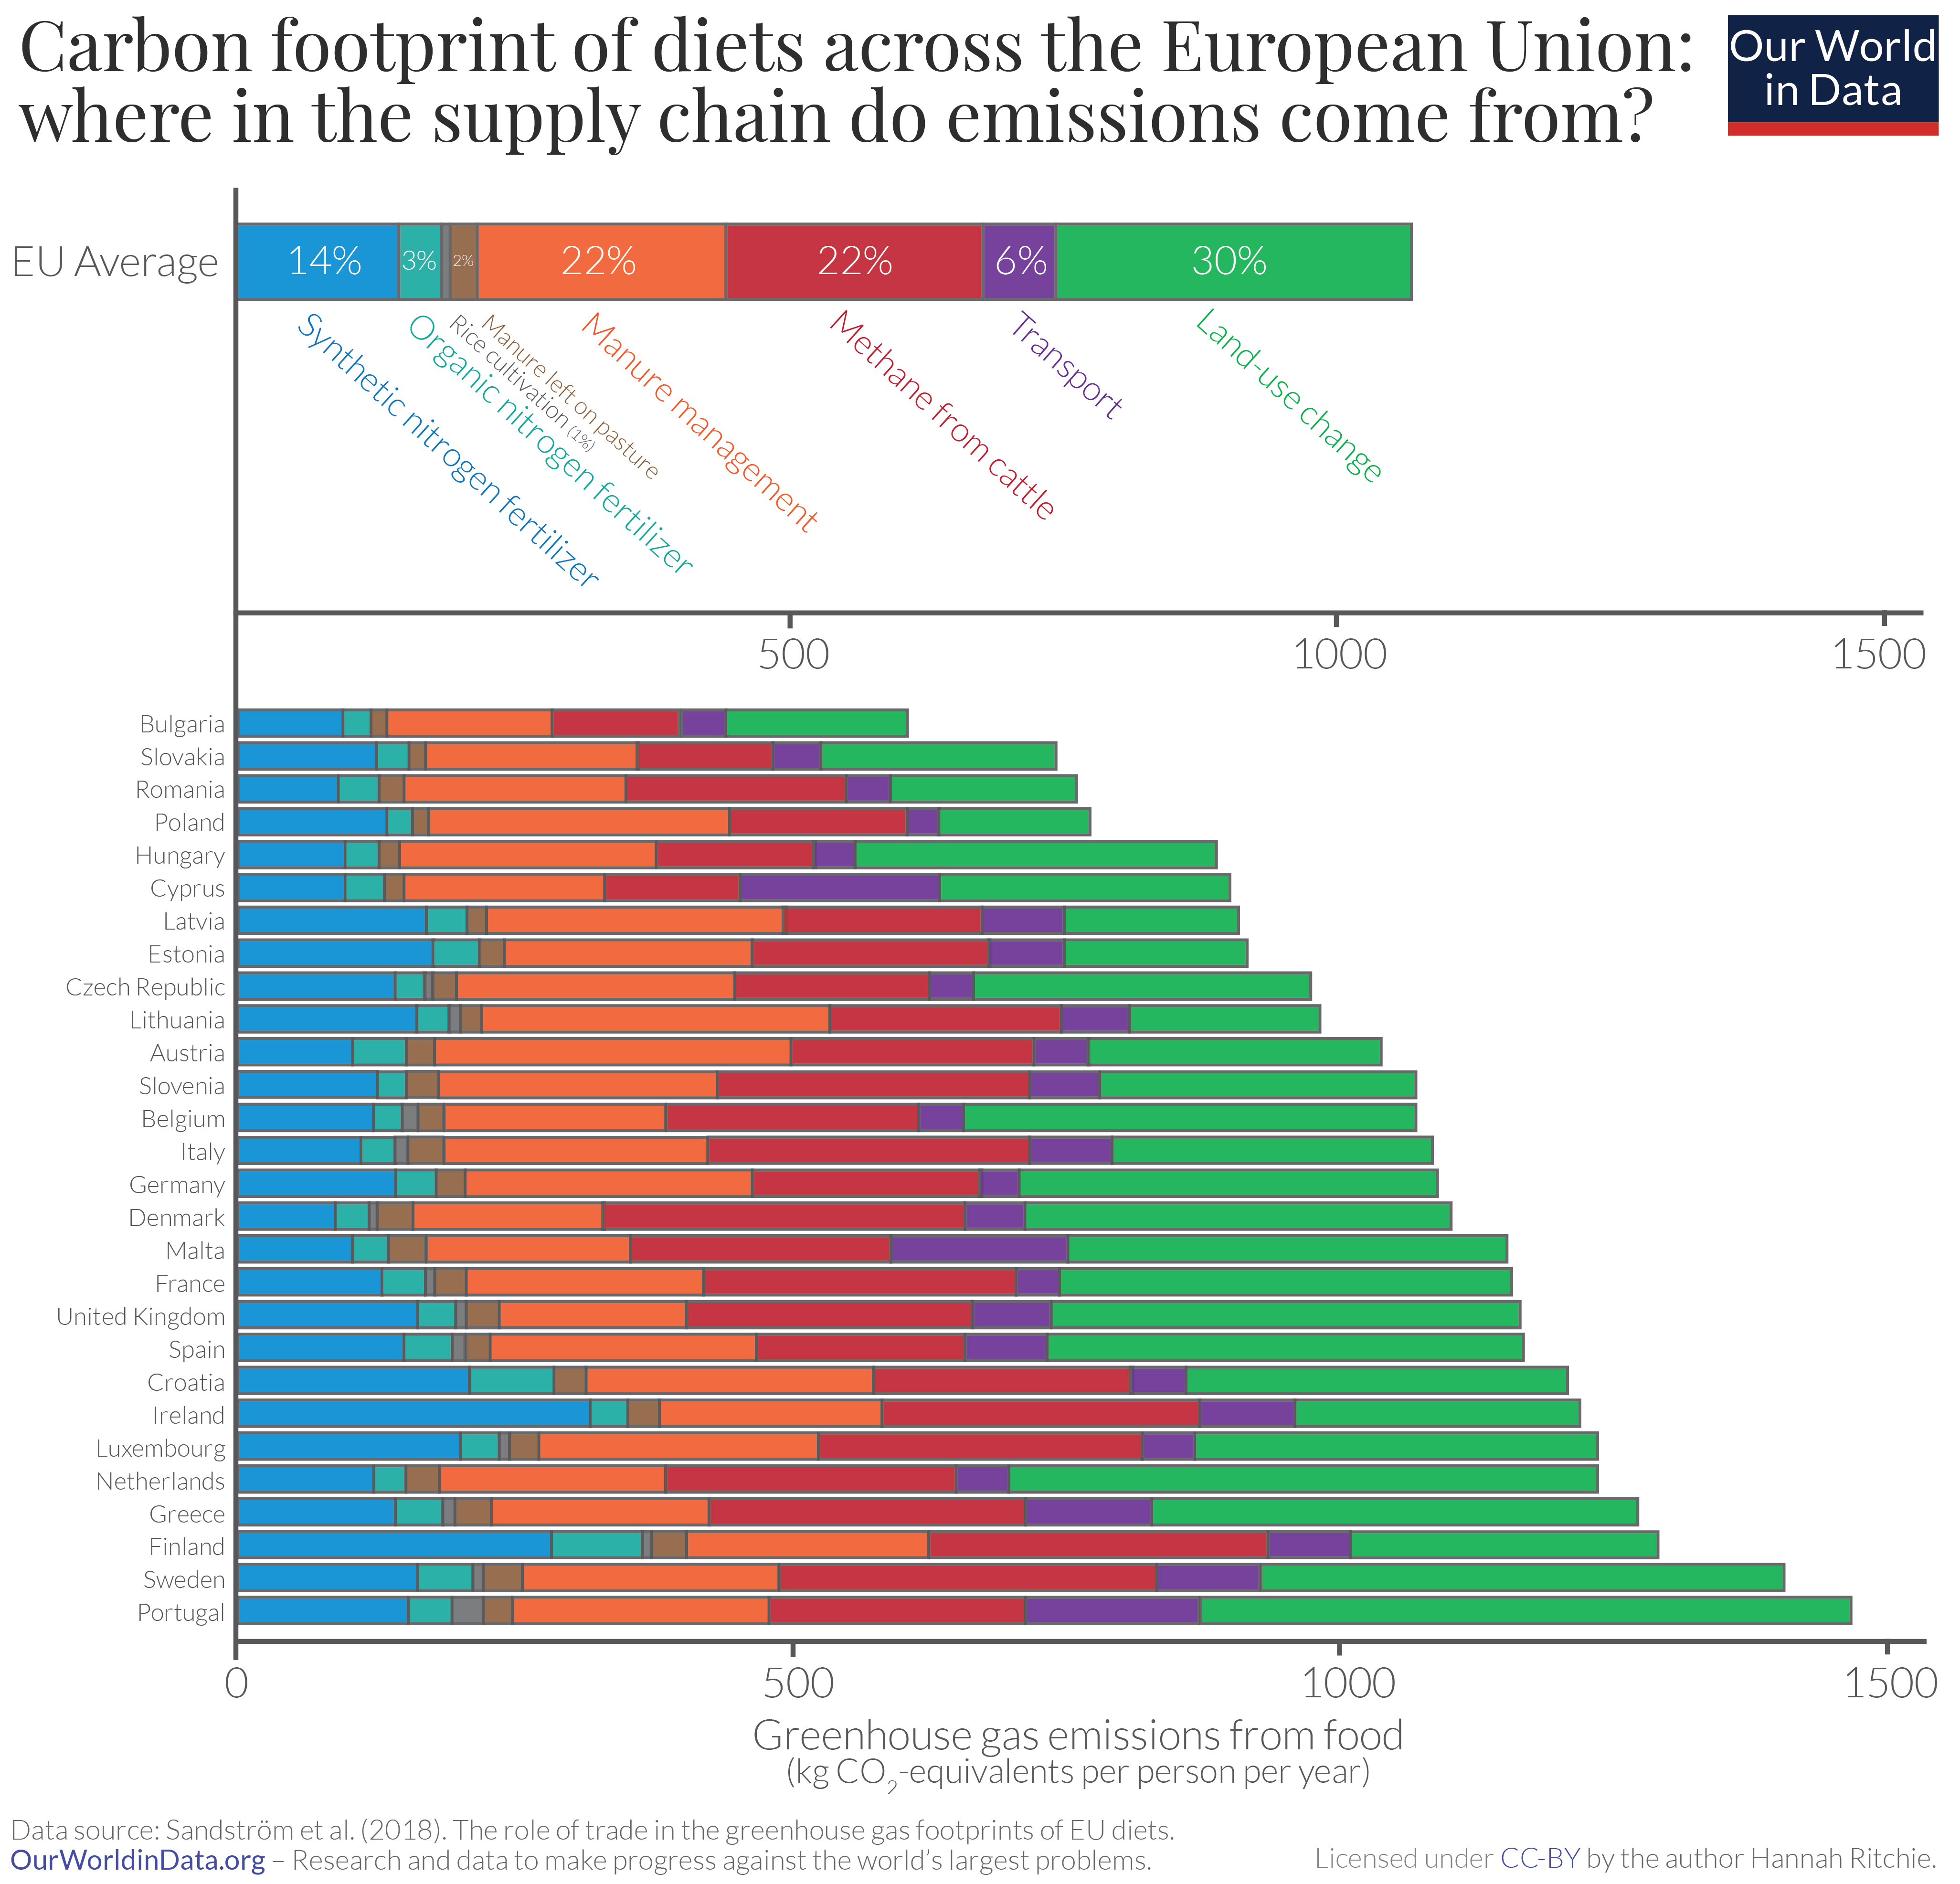 Carbon footprint of eu diets by supply chain